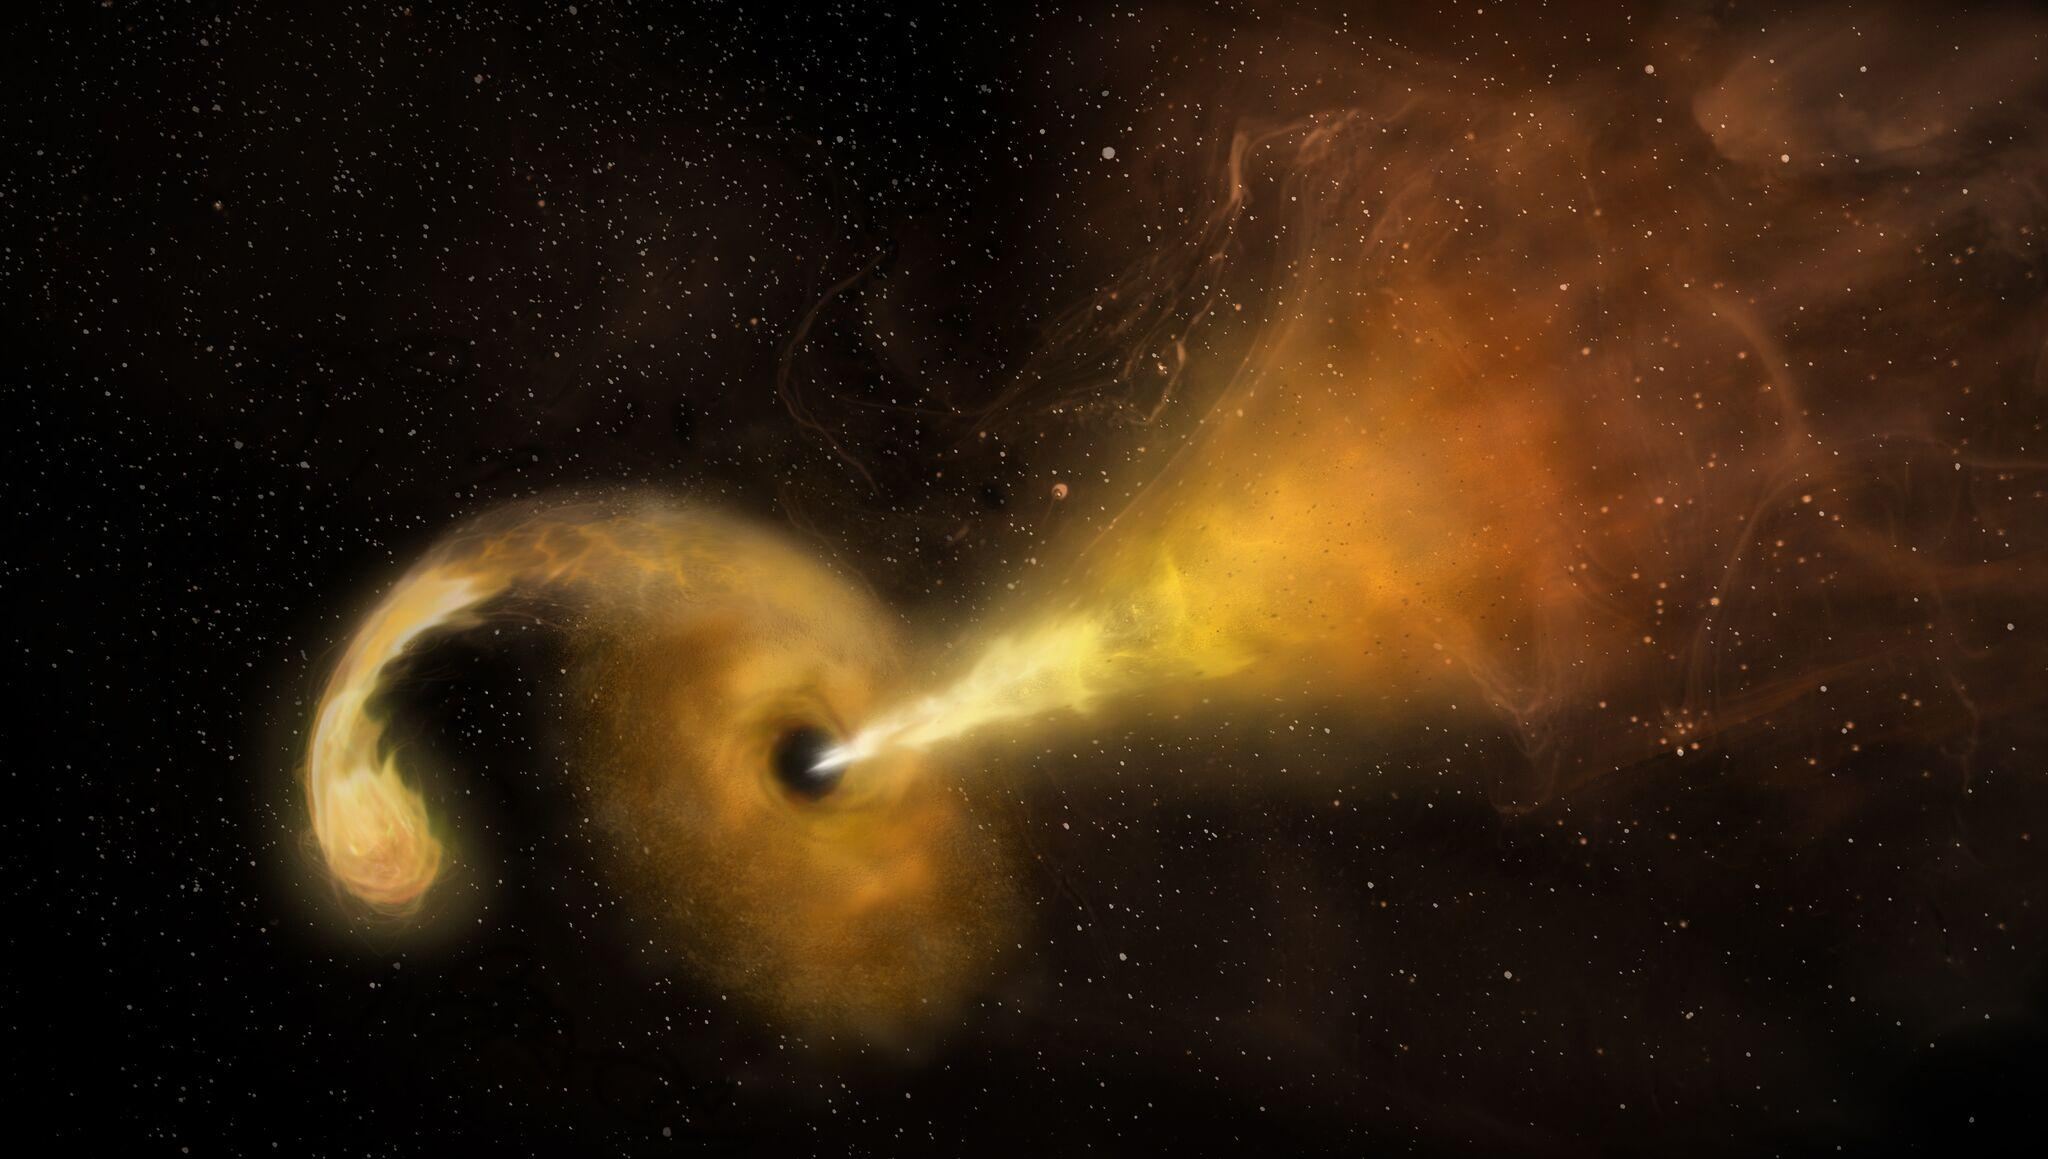 Supermassive Black Hole Destroys Star, Launches Jet of Matter | Astronomy